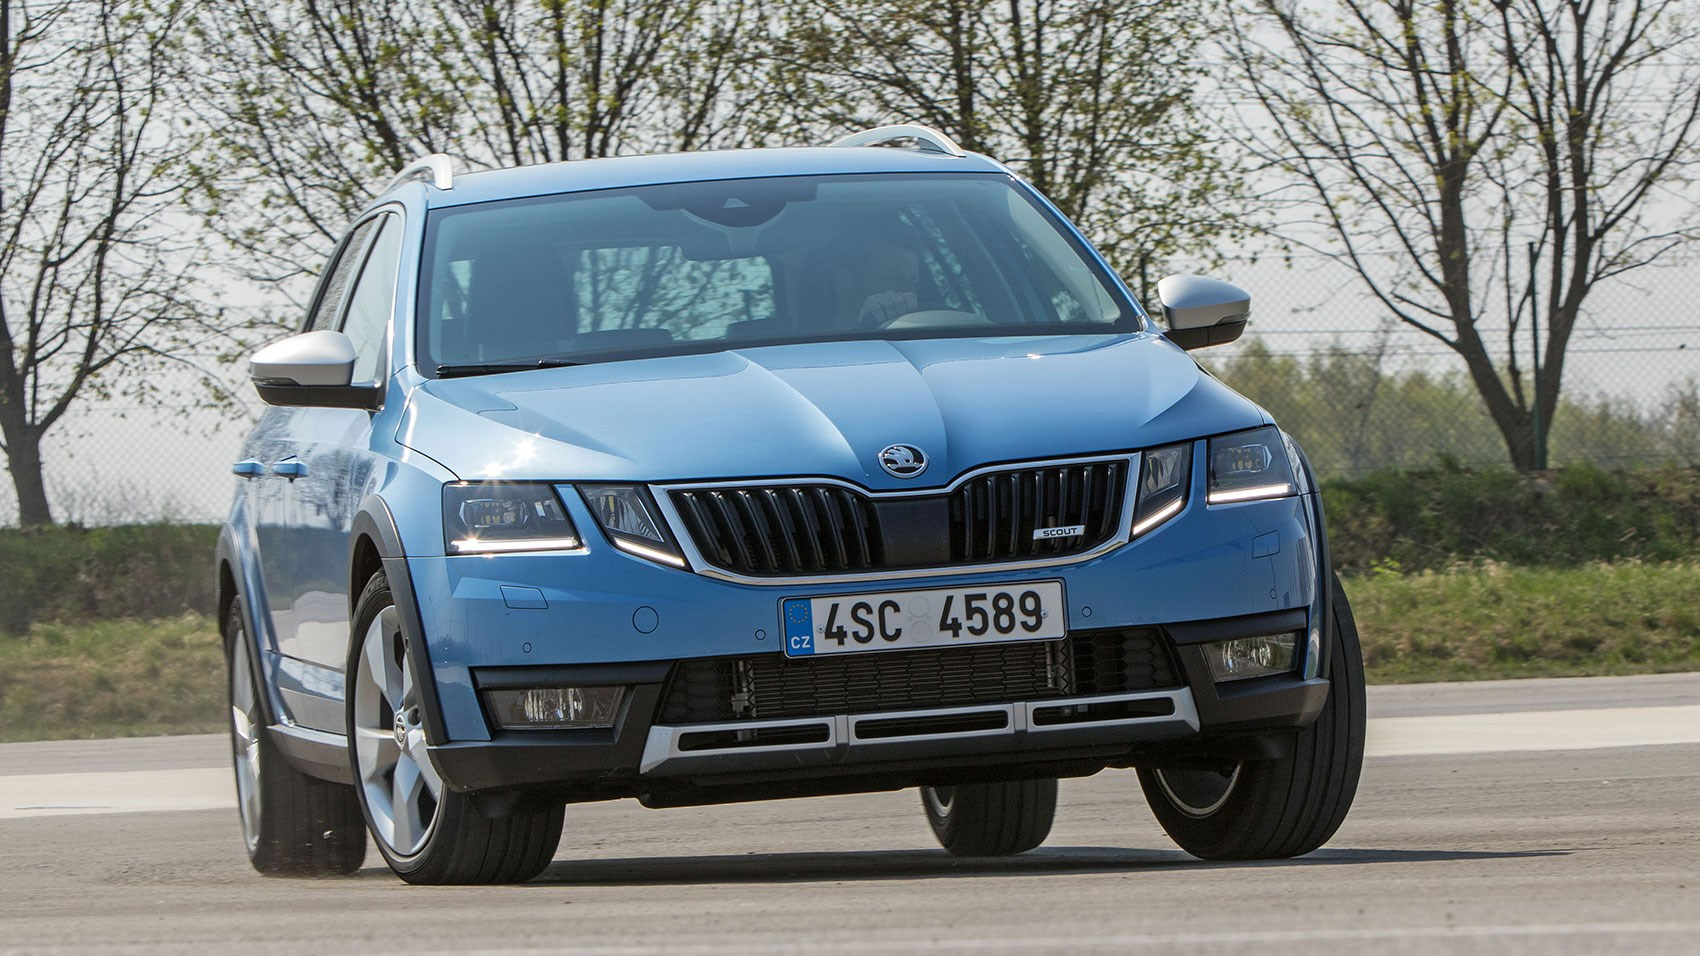 skoda octavia scout 2 0 tdi 150 4x4 facelift 2017 review. Black Bedroom Furniture Sets. Home Design Ideas